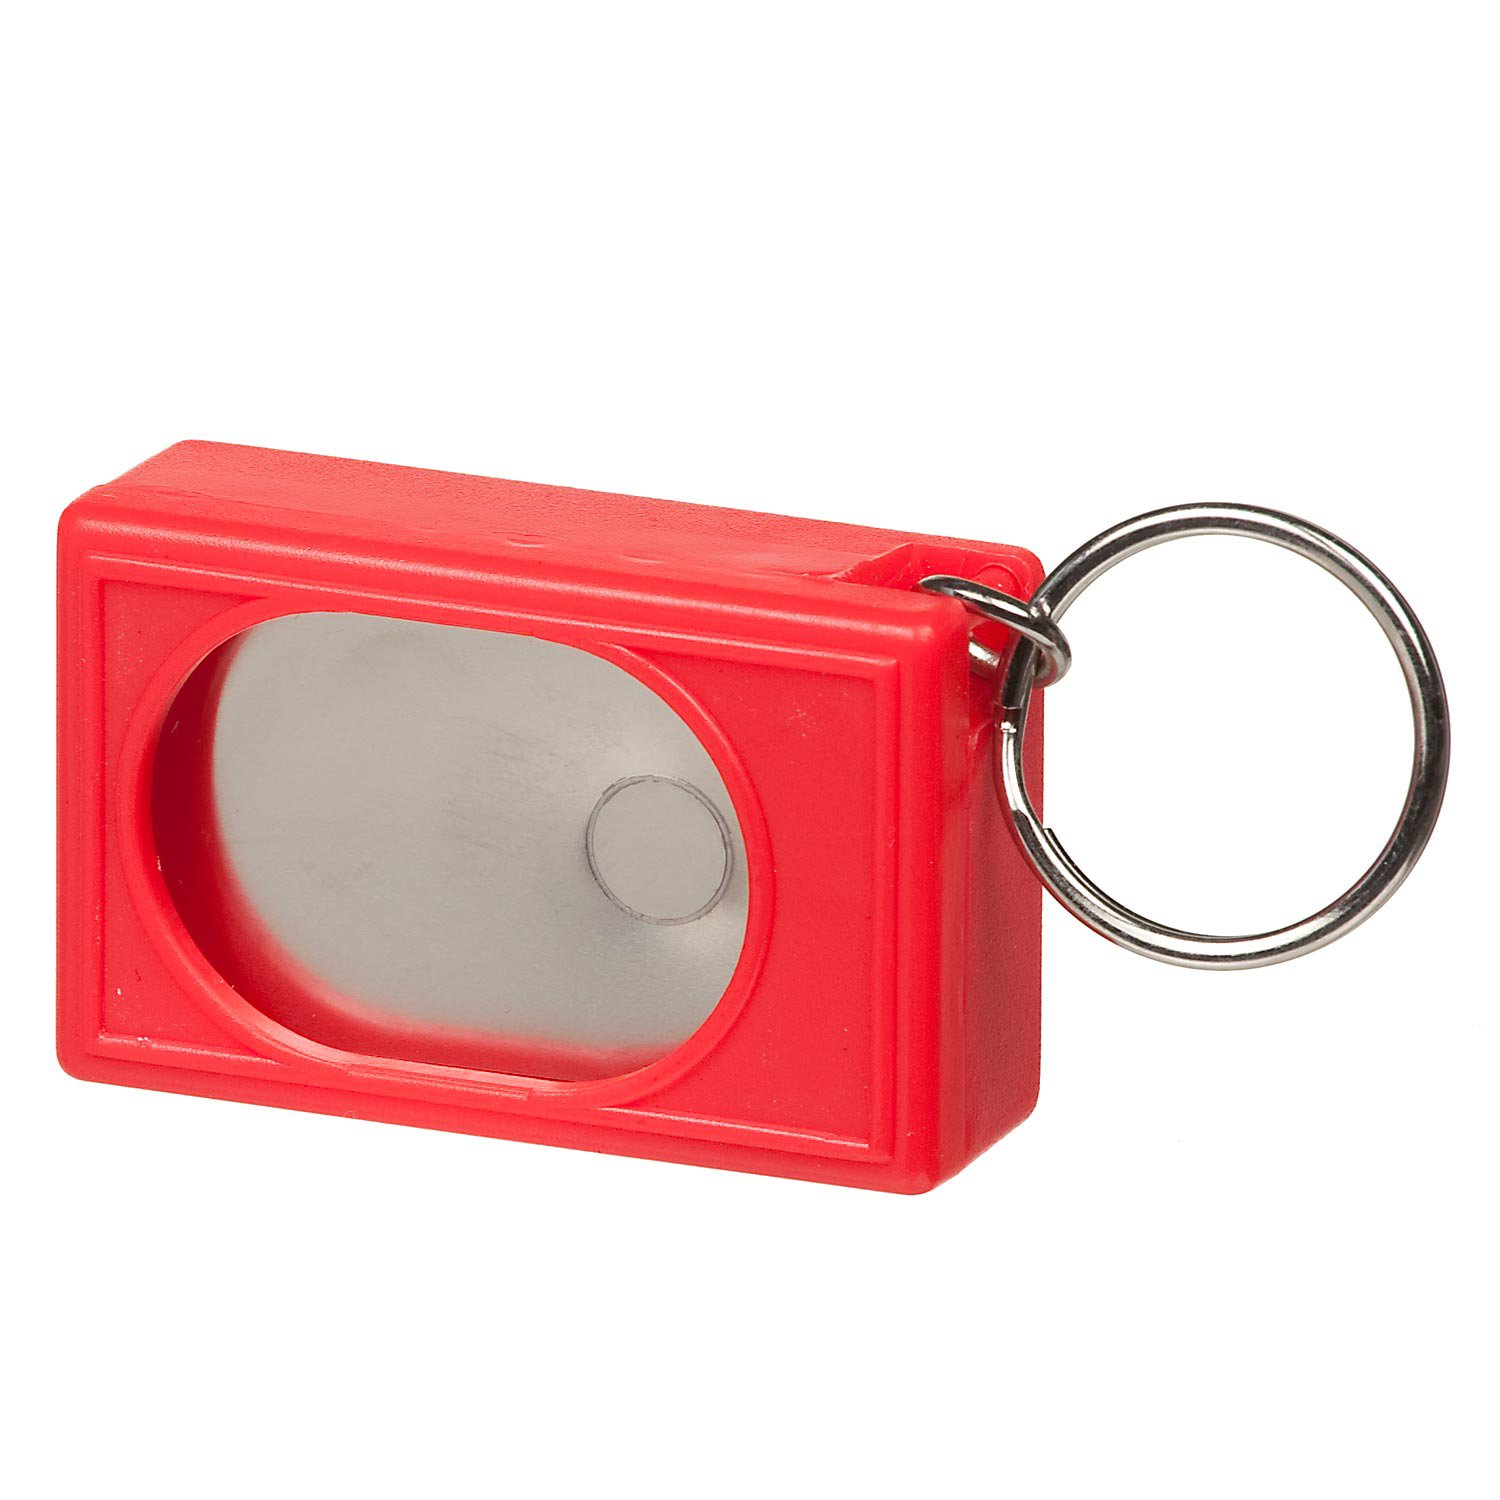 Best Clicker For Dog Training